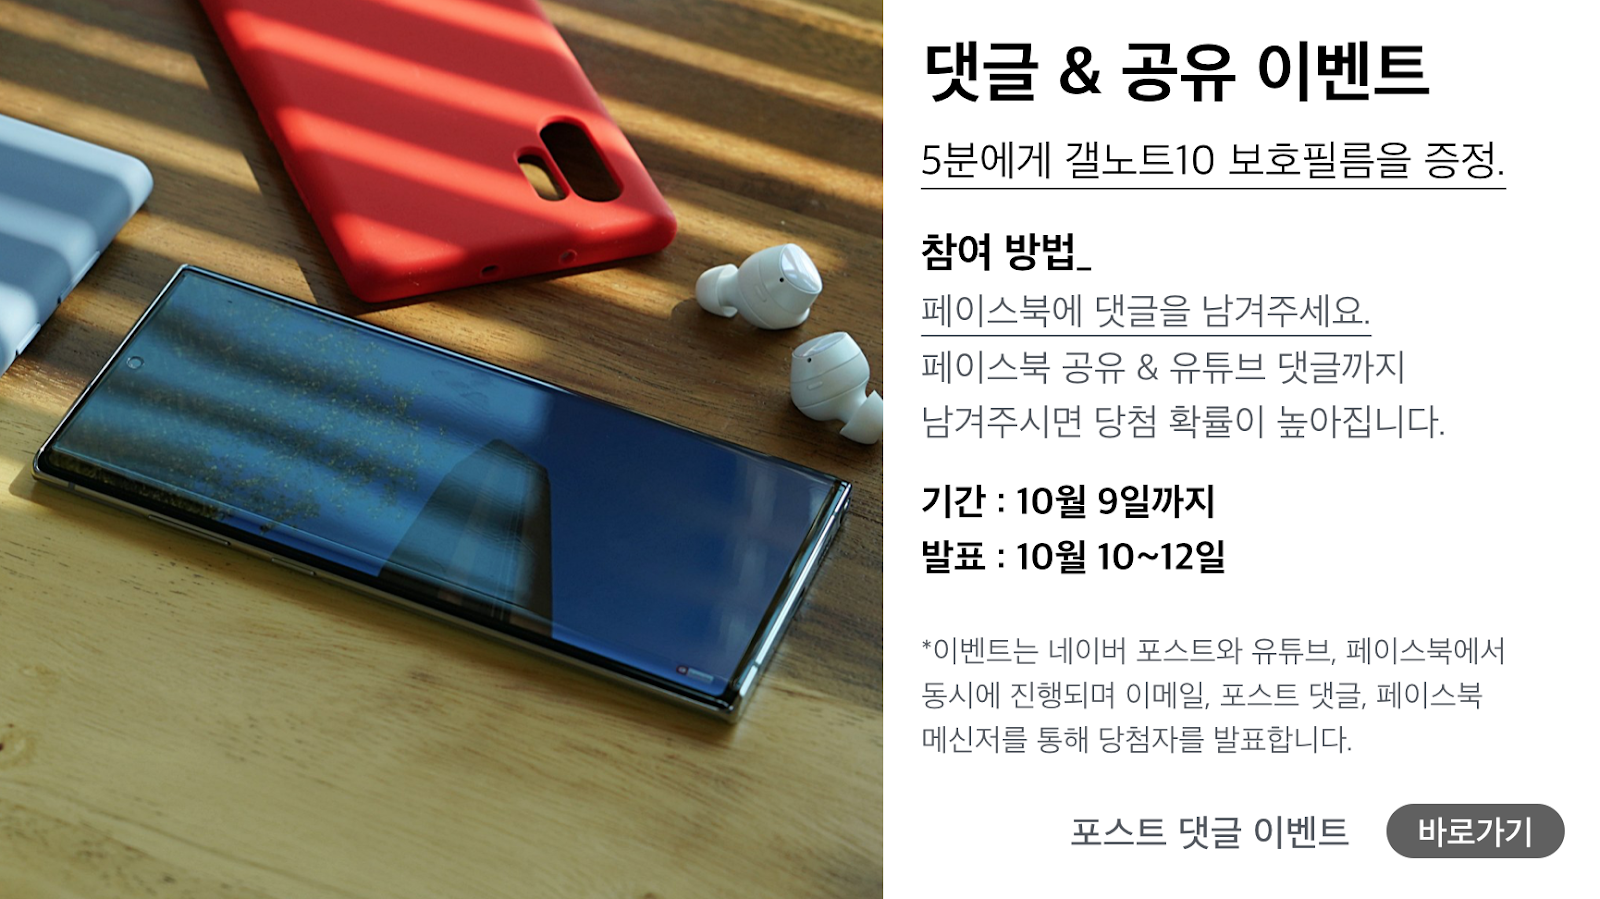 http://naver.me/FHnote6d